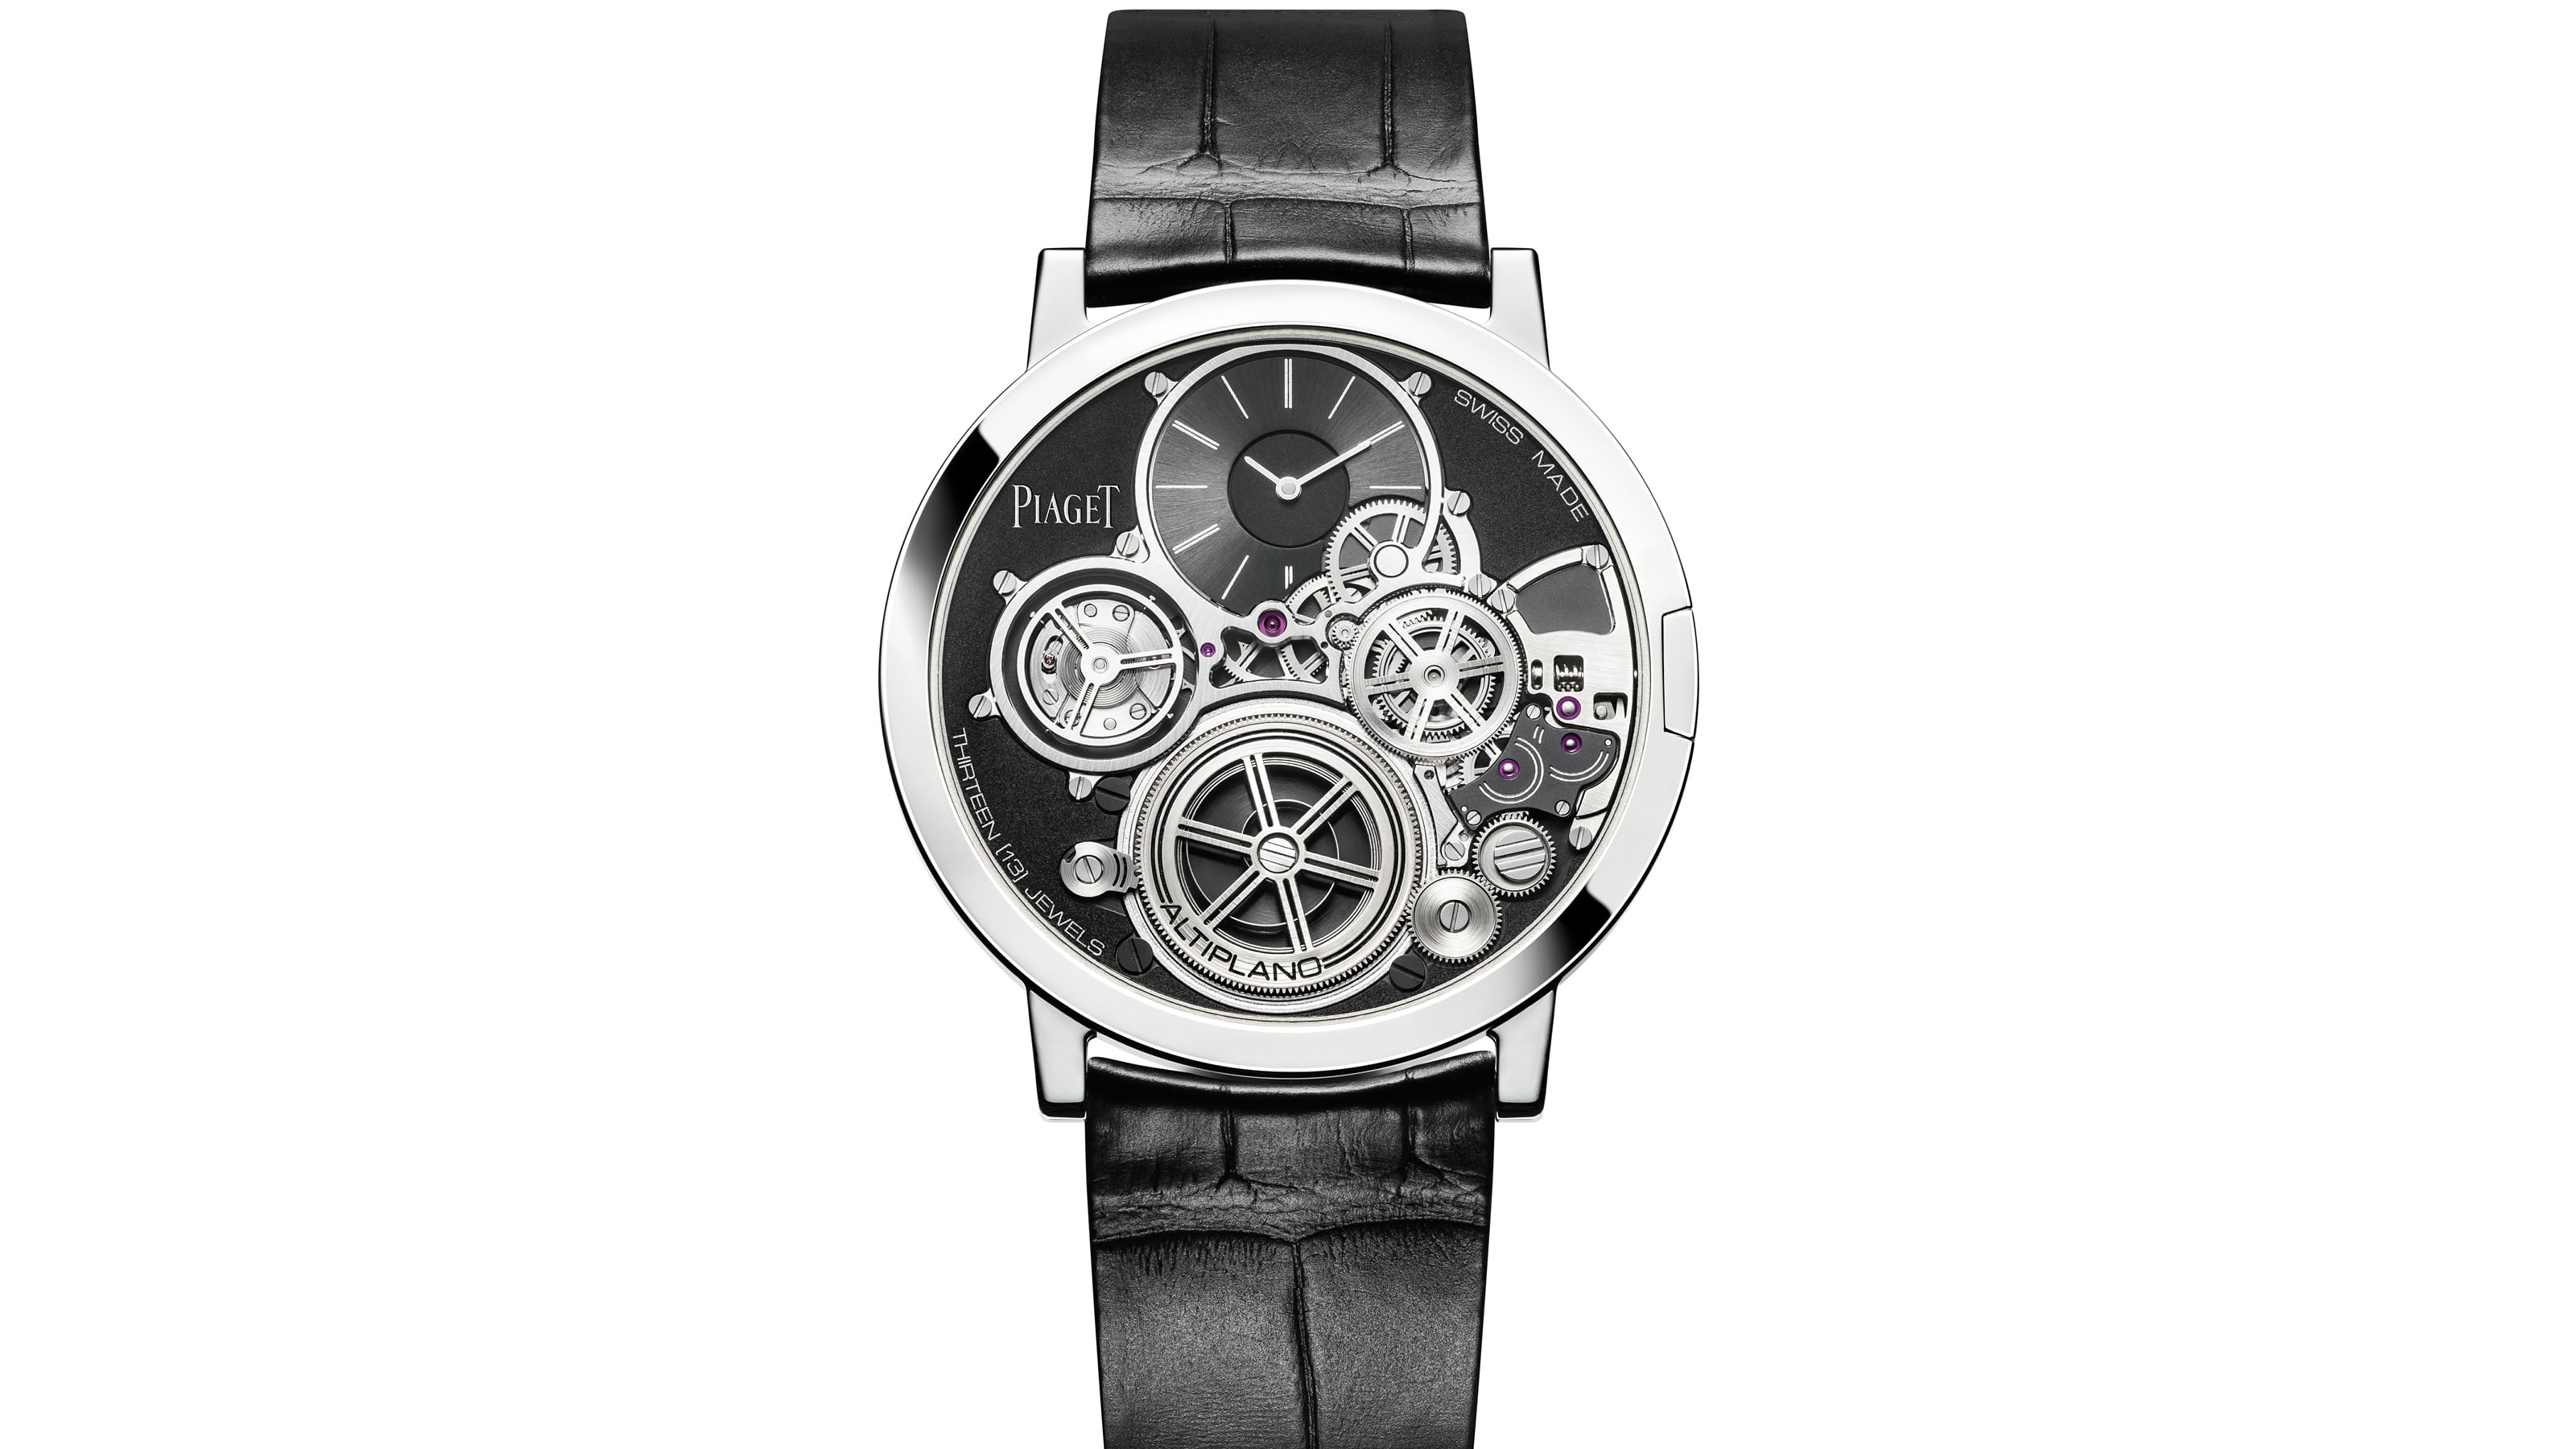 over watch world will piaget watches s altiplano thinnest the worlds mechanical verge cost costs